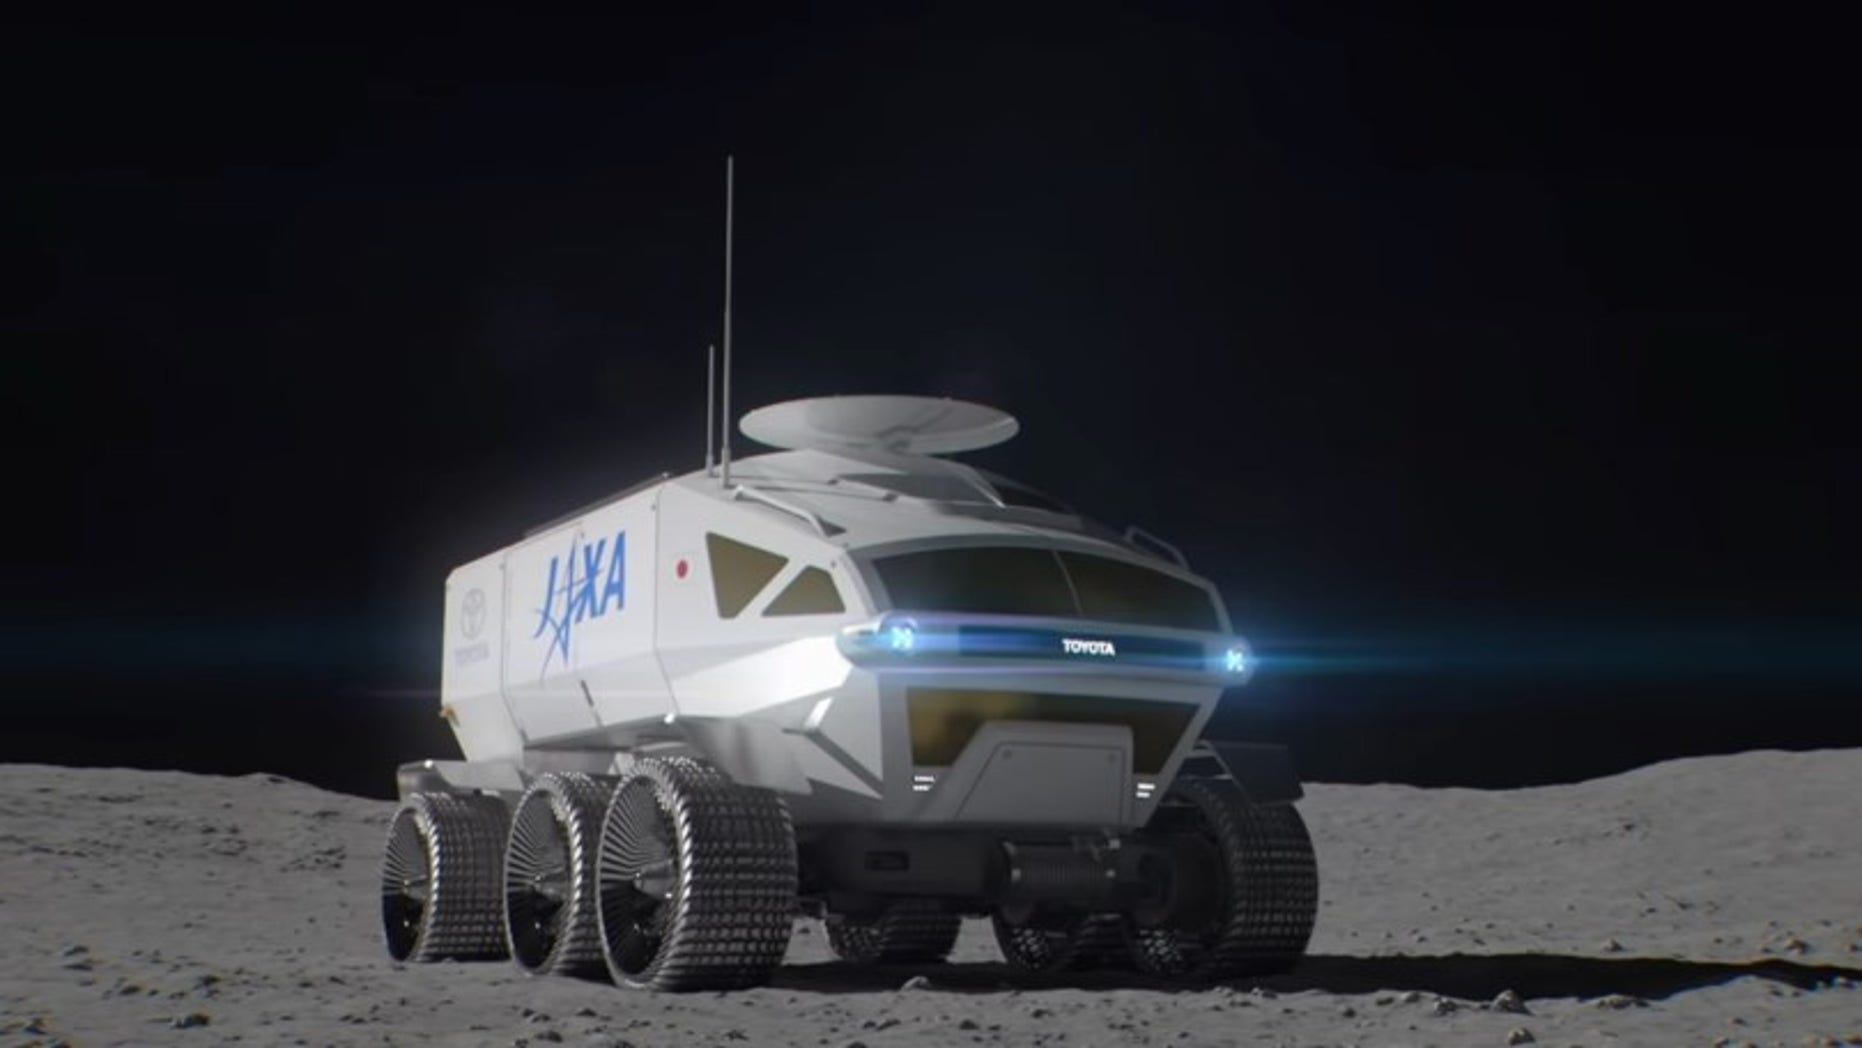 Toyota revealed its plans for a manned, pressurized moon rover it hopes to land on the moon in 2029, in collaboration with the Japanese Aerospace Exploration Agency (JAXA). (Japan Aerospace Exploration Agency & Toyota Motor Corporation)